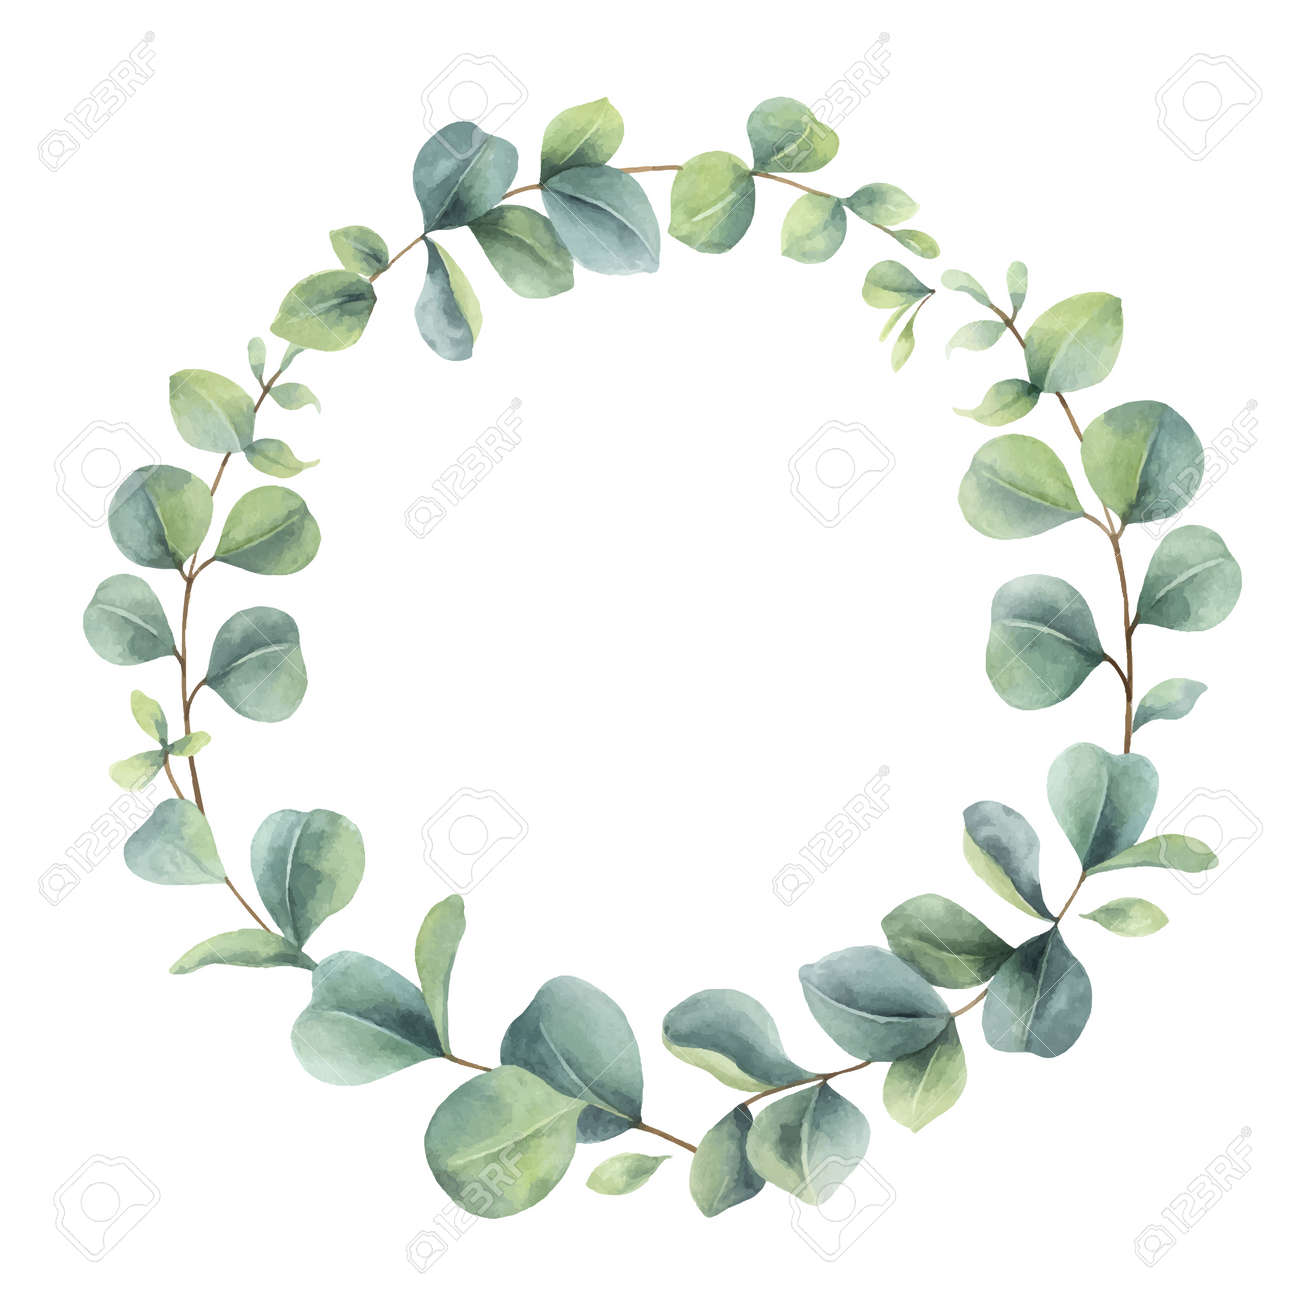 Watercolor vector wreath with eucalyptus branches and leaves. - 169399002